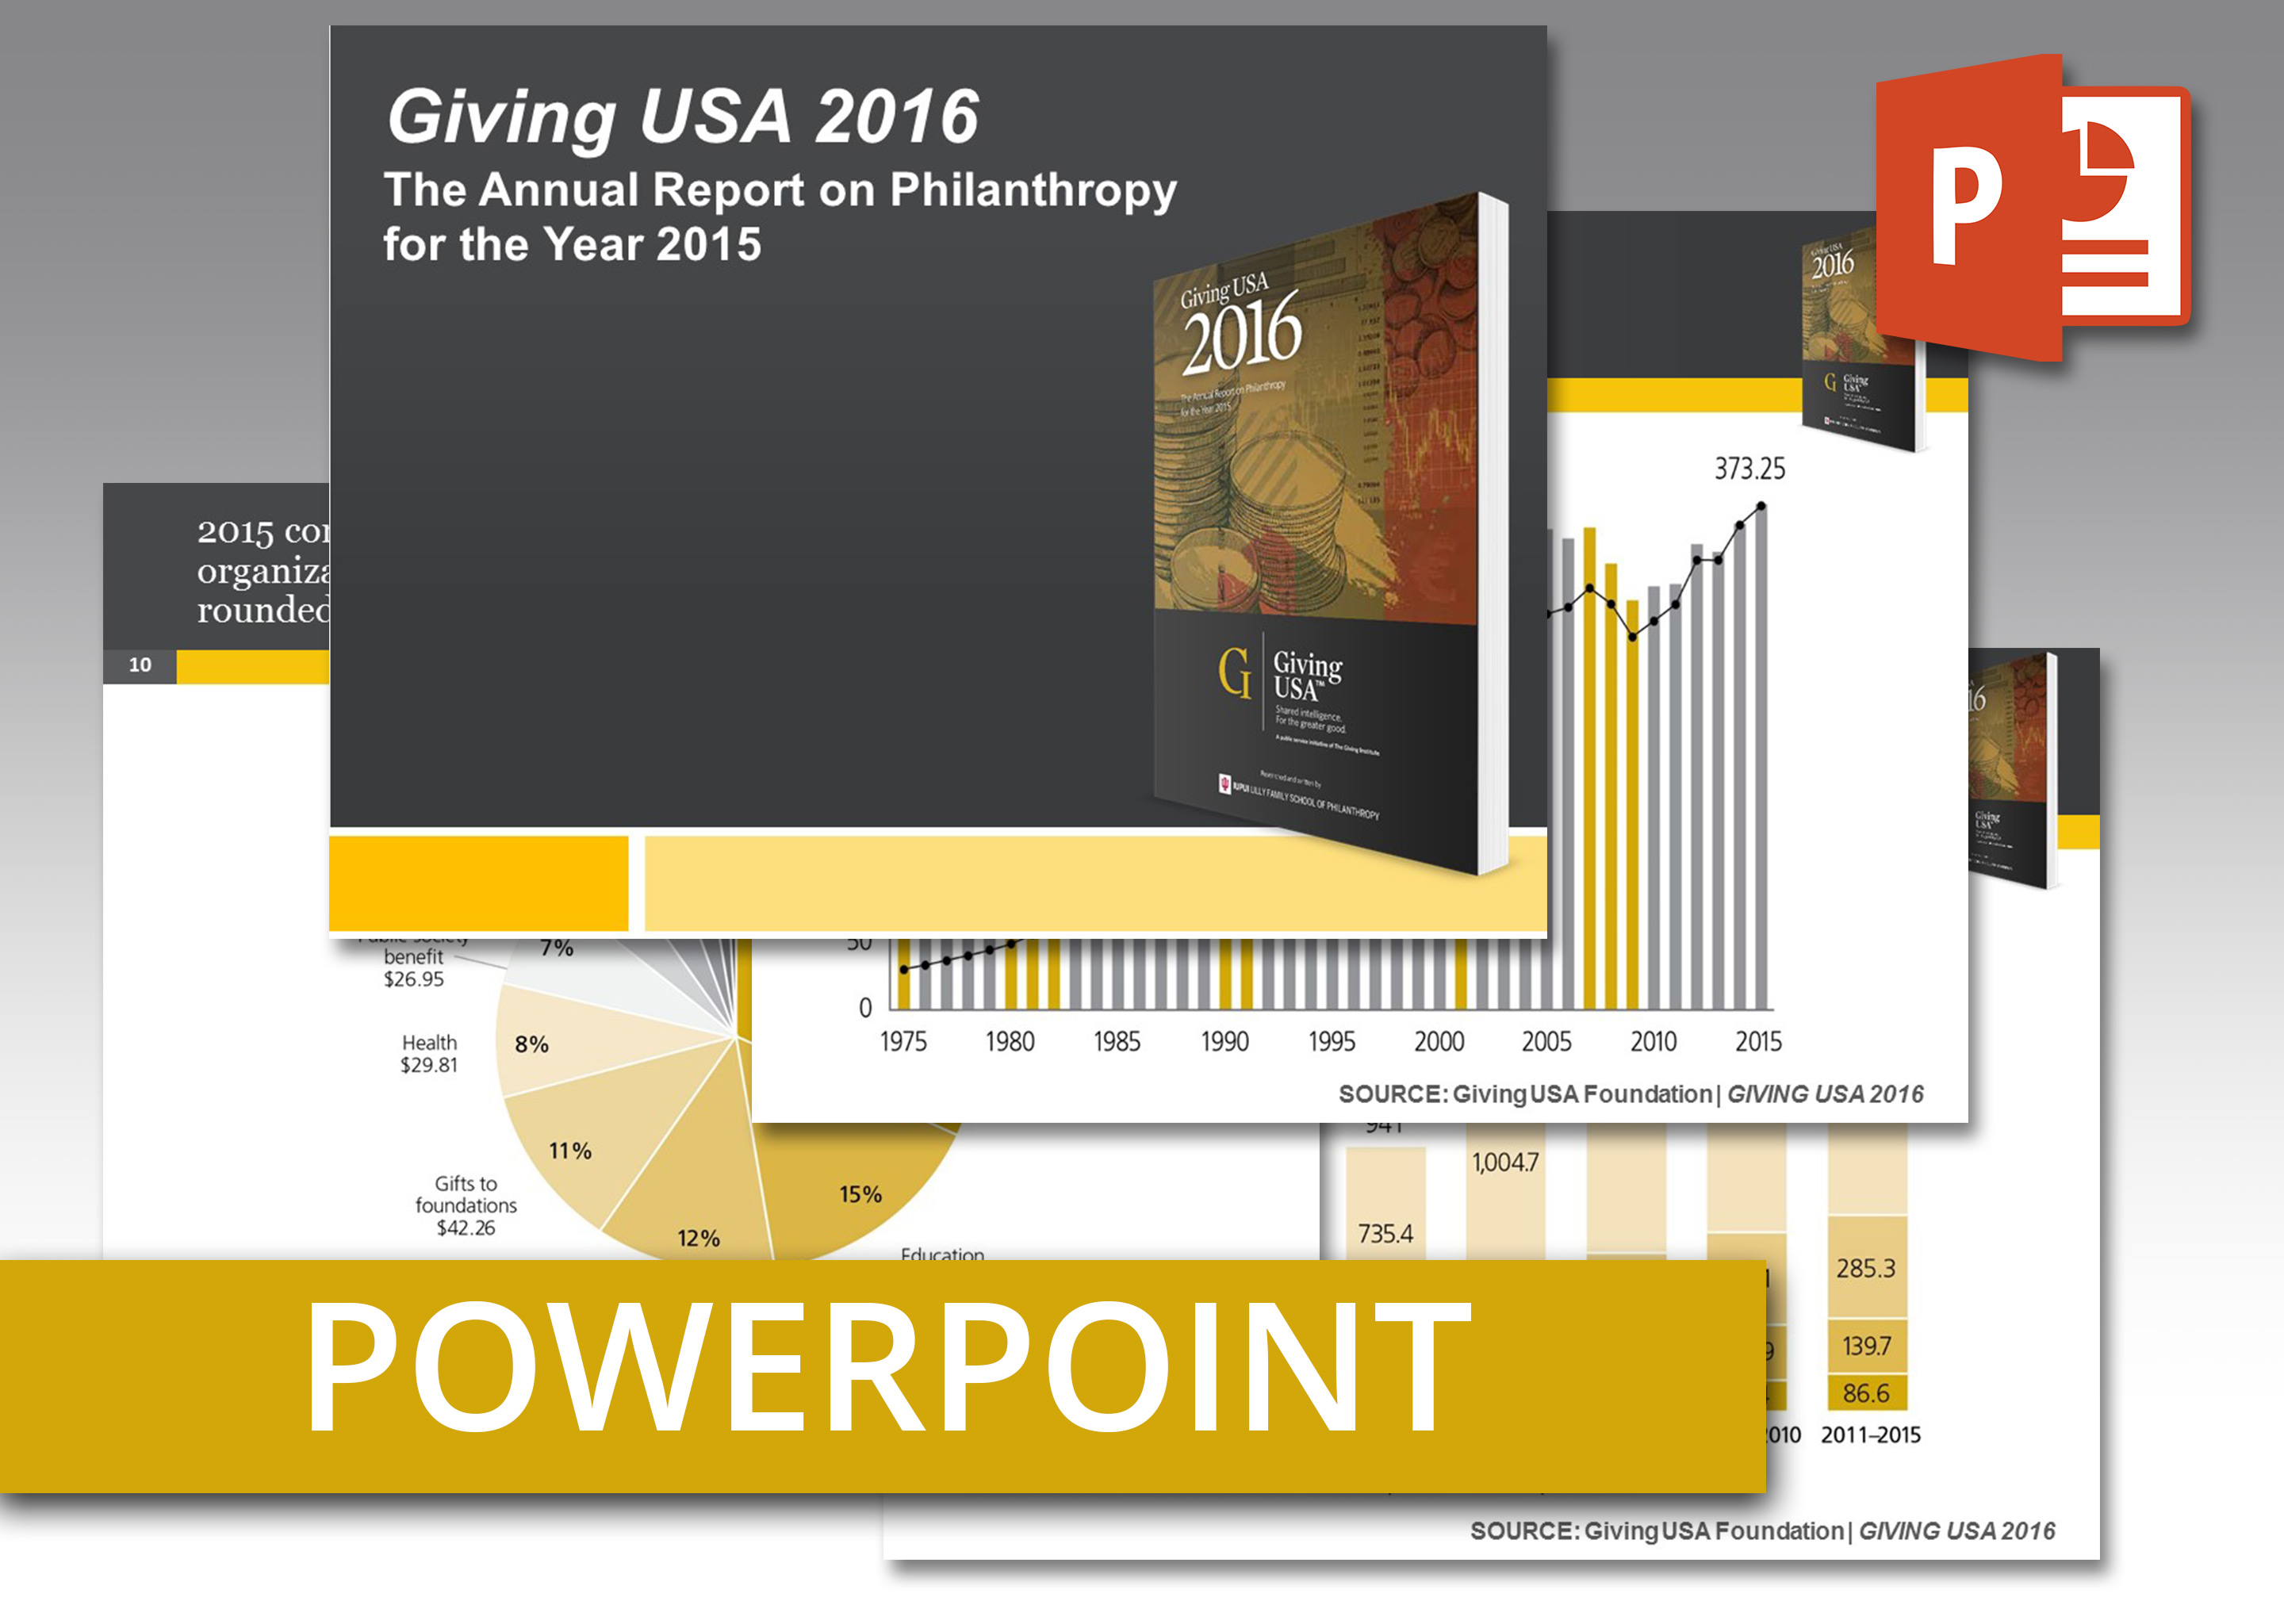 Usdgus  Marvelous Giving Usa  Powerpoint An Easytouse Presentation Of Report  With Exquisite Giving Usa  Powerpoint An Easytouse Presentation Of Report Findings Including Talking Points With Charming Online Powerpoints Also Great Powerpoint Examples In Addition Powerpoint To Video Converter Free And Golf Powerpoint Template As Well As Creating A Poster In Powerpoint Additionally Keynote Or Powerpoint From Givingusaorg With Usdgus  Exquisite Giving Usa  Powerpoint An Easytouse Presentation Of Report  With Charming Giving Usa  Powerpoint An Easytouse Presentation Of Report Findings Including Talking Points And Marvelous Online Powerpoints Also Great Powerpoint Examples In Addition Powerpoint To Video Converter Free From Givingusaorg